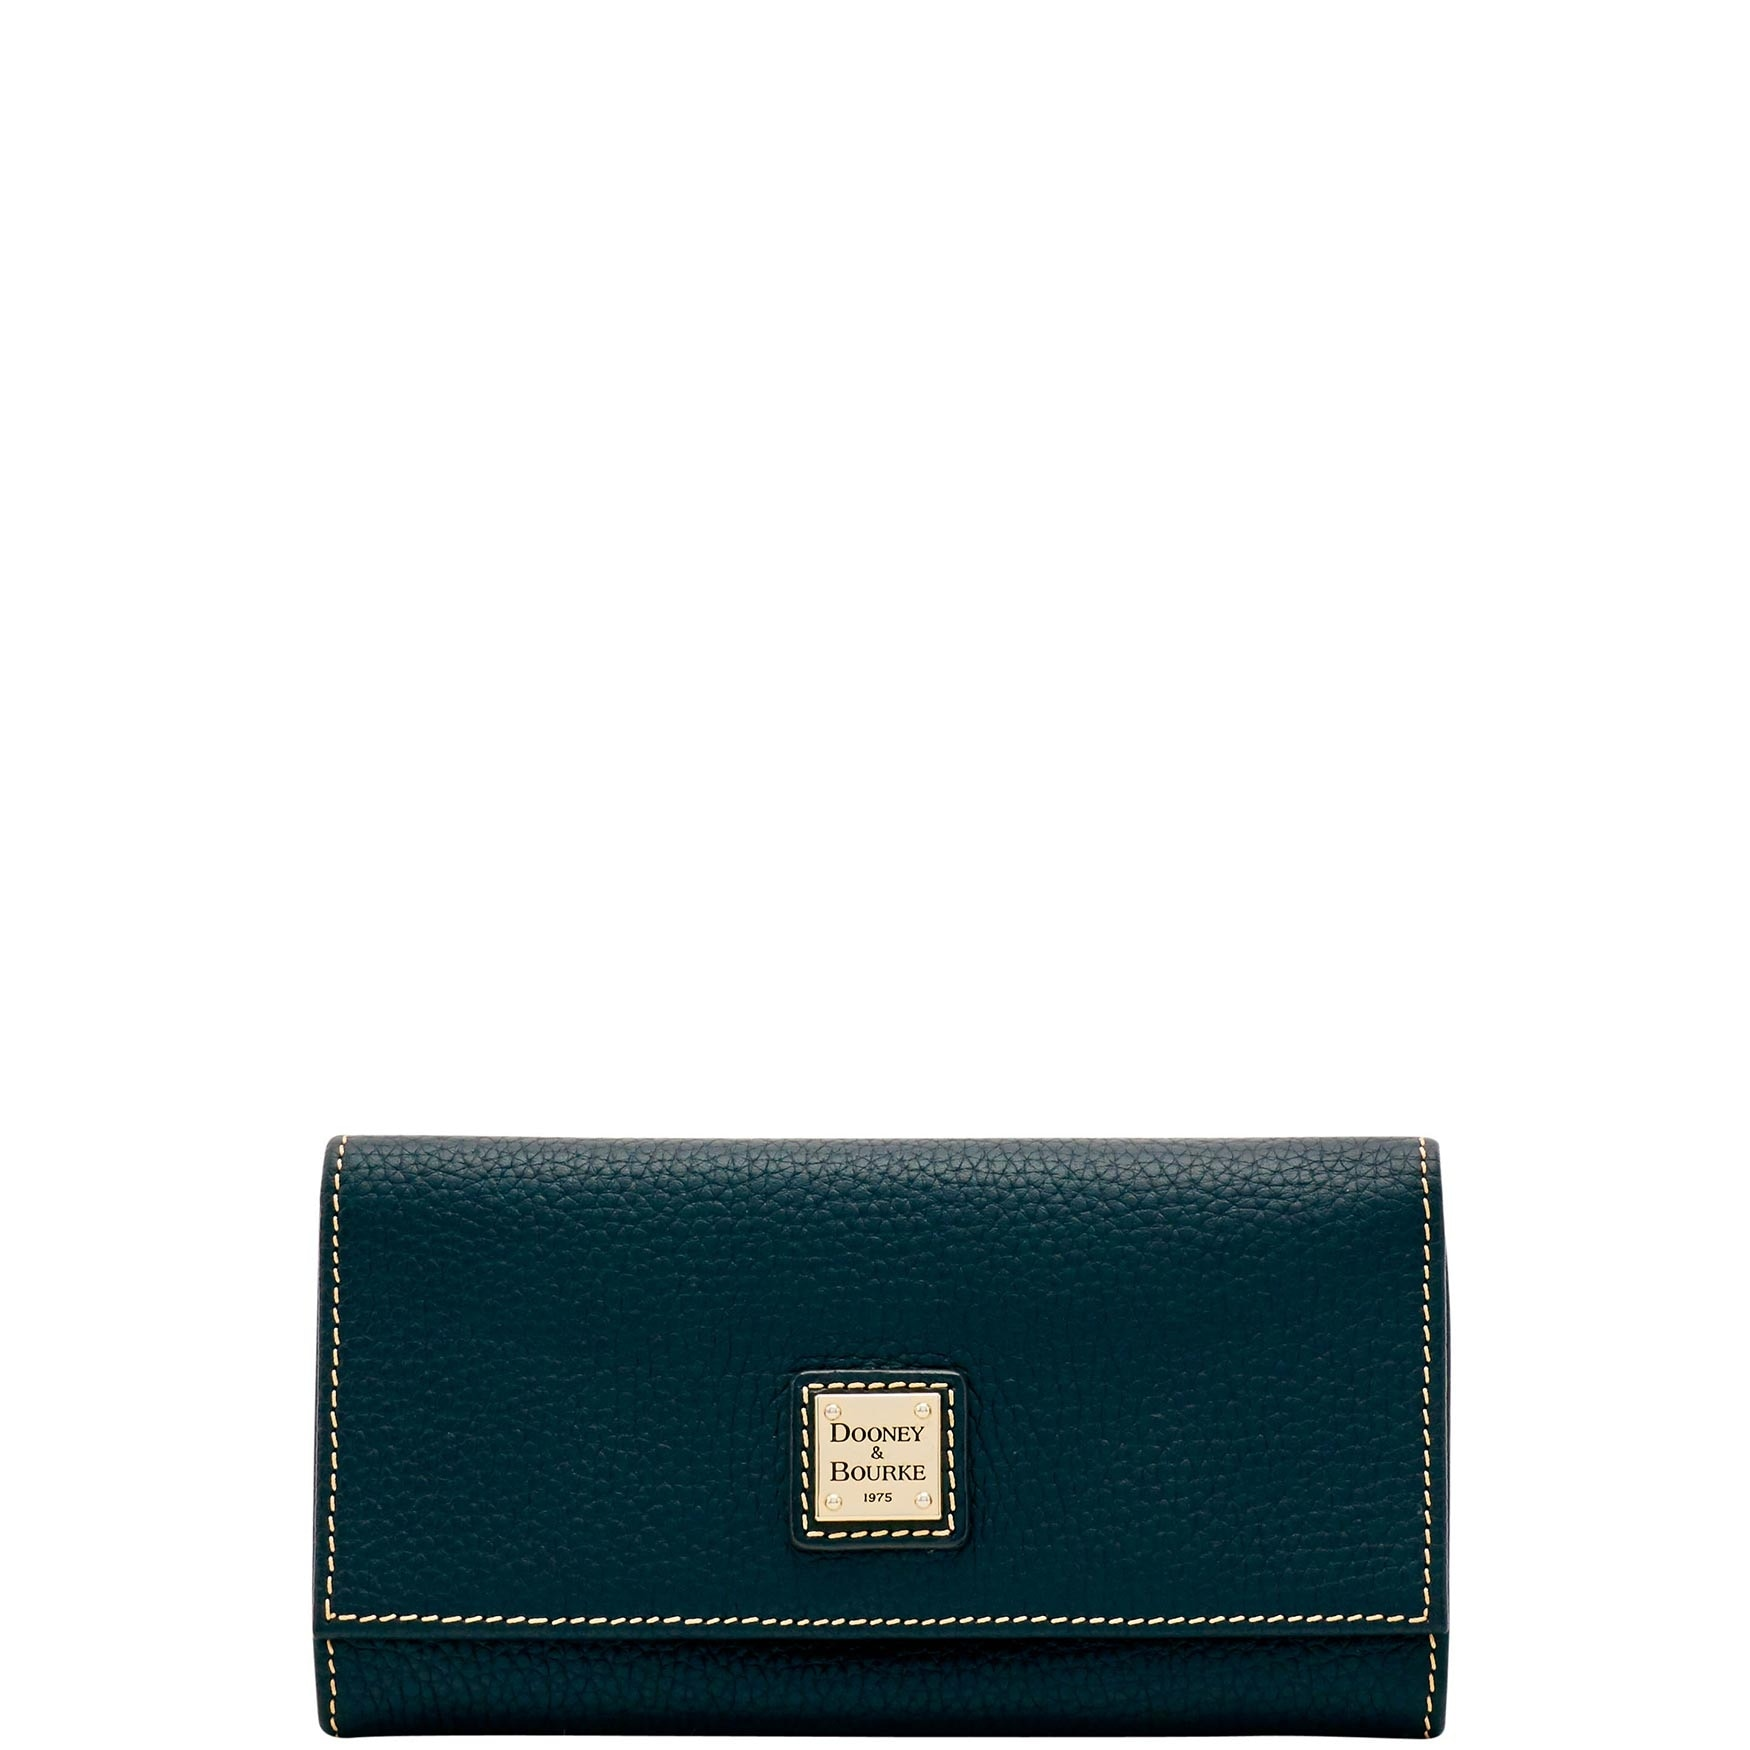 70d85ae245 Dooney & Bourke Pebble Grain Framed Continental Wallet (Introduced by  Dooney & Bourke at $148 in Nov 2018)